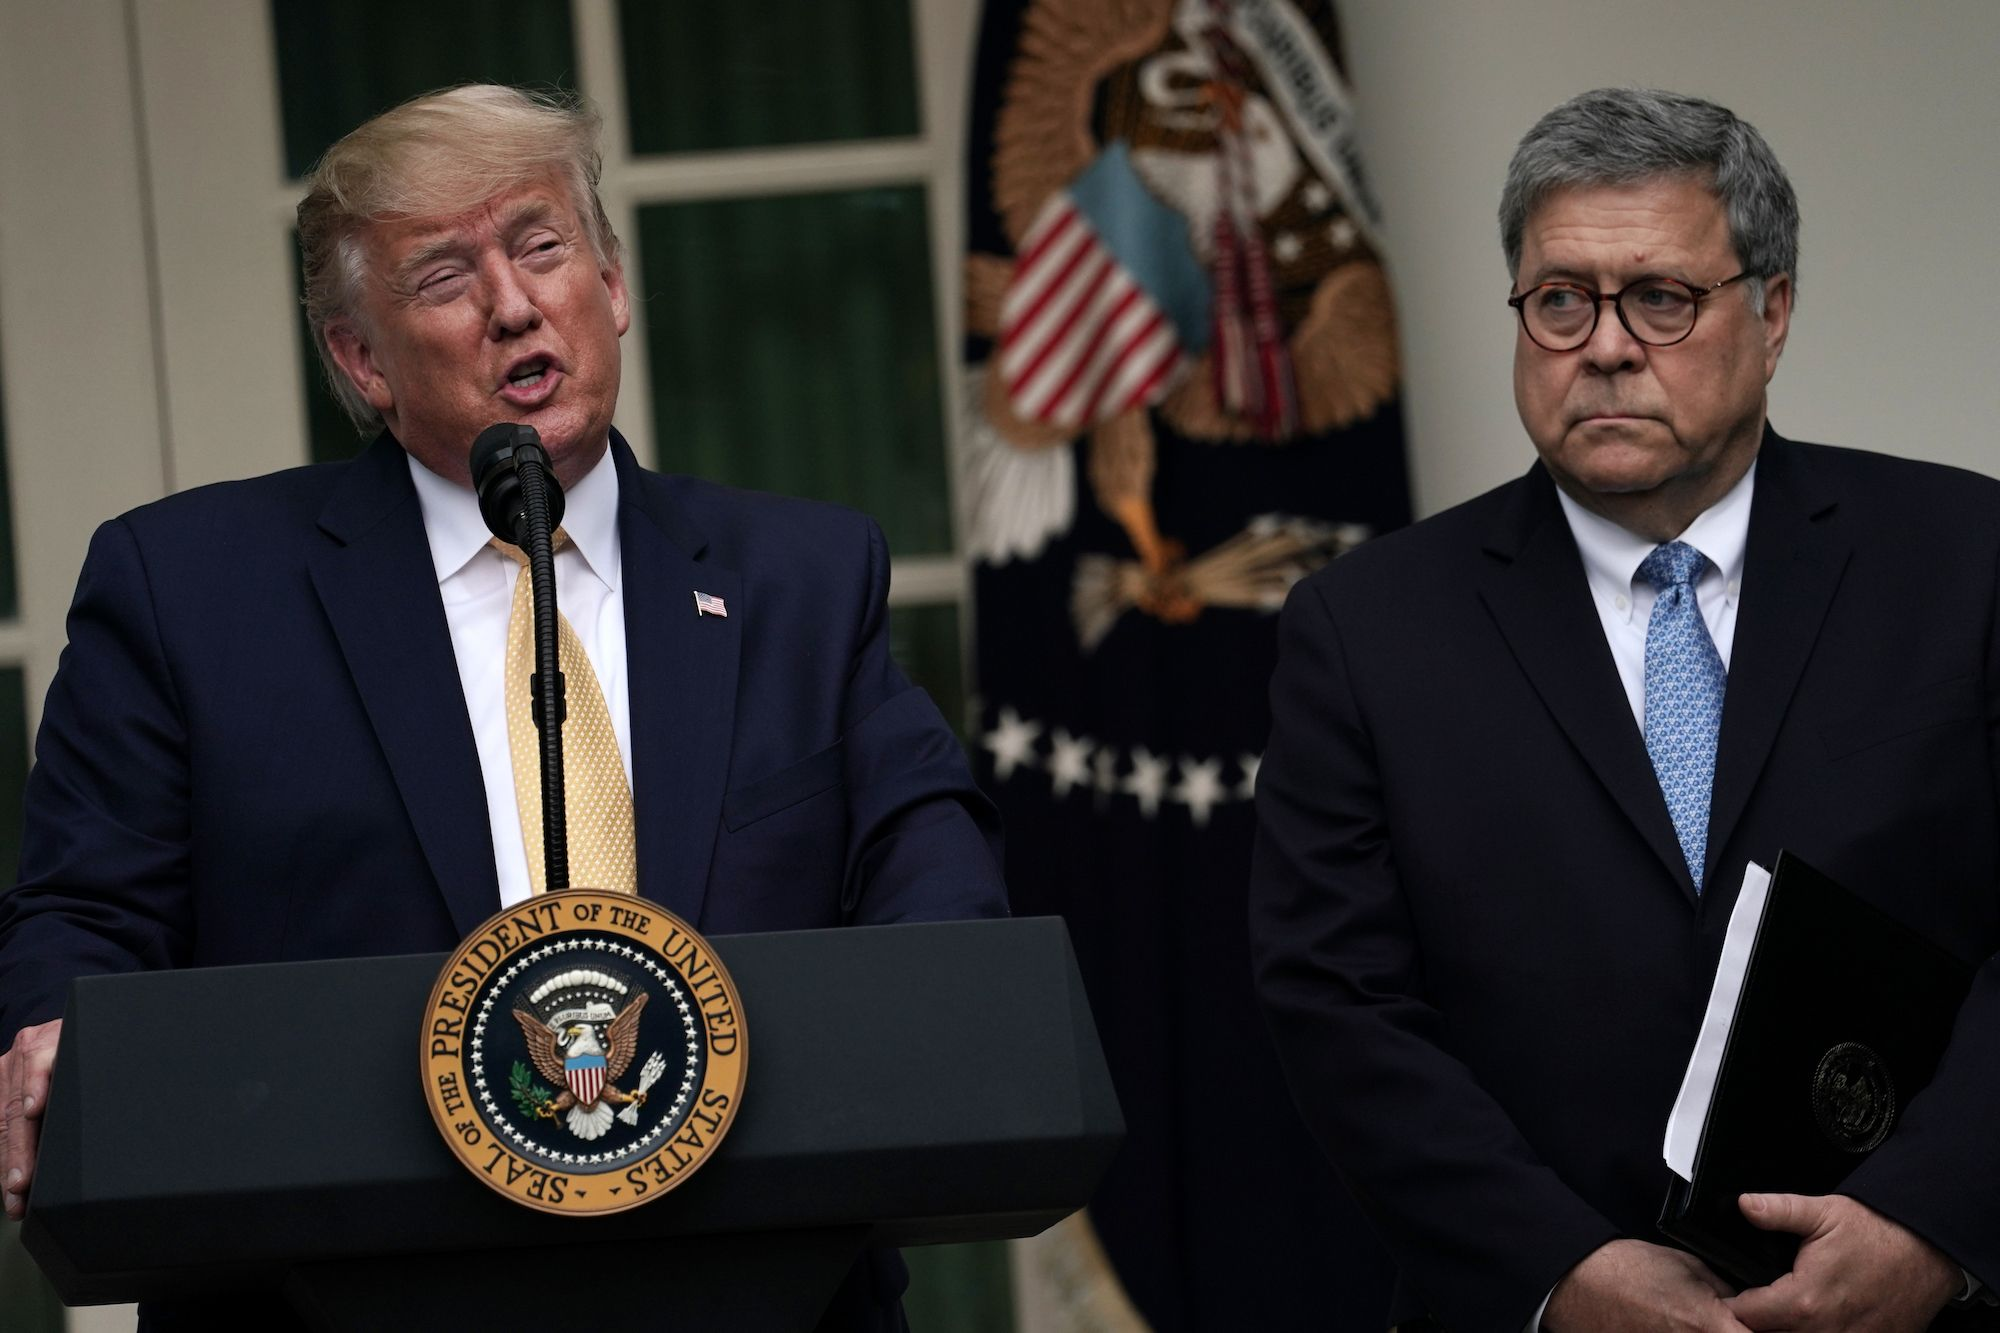 The Simplest Explanation Is That William Barr Sees the Writing on the Wall